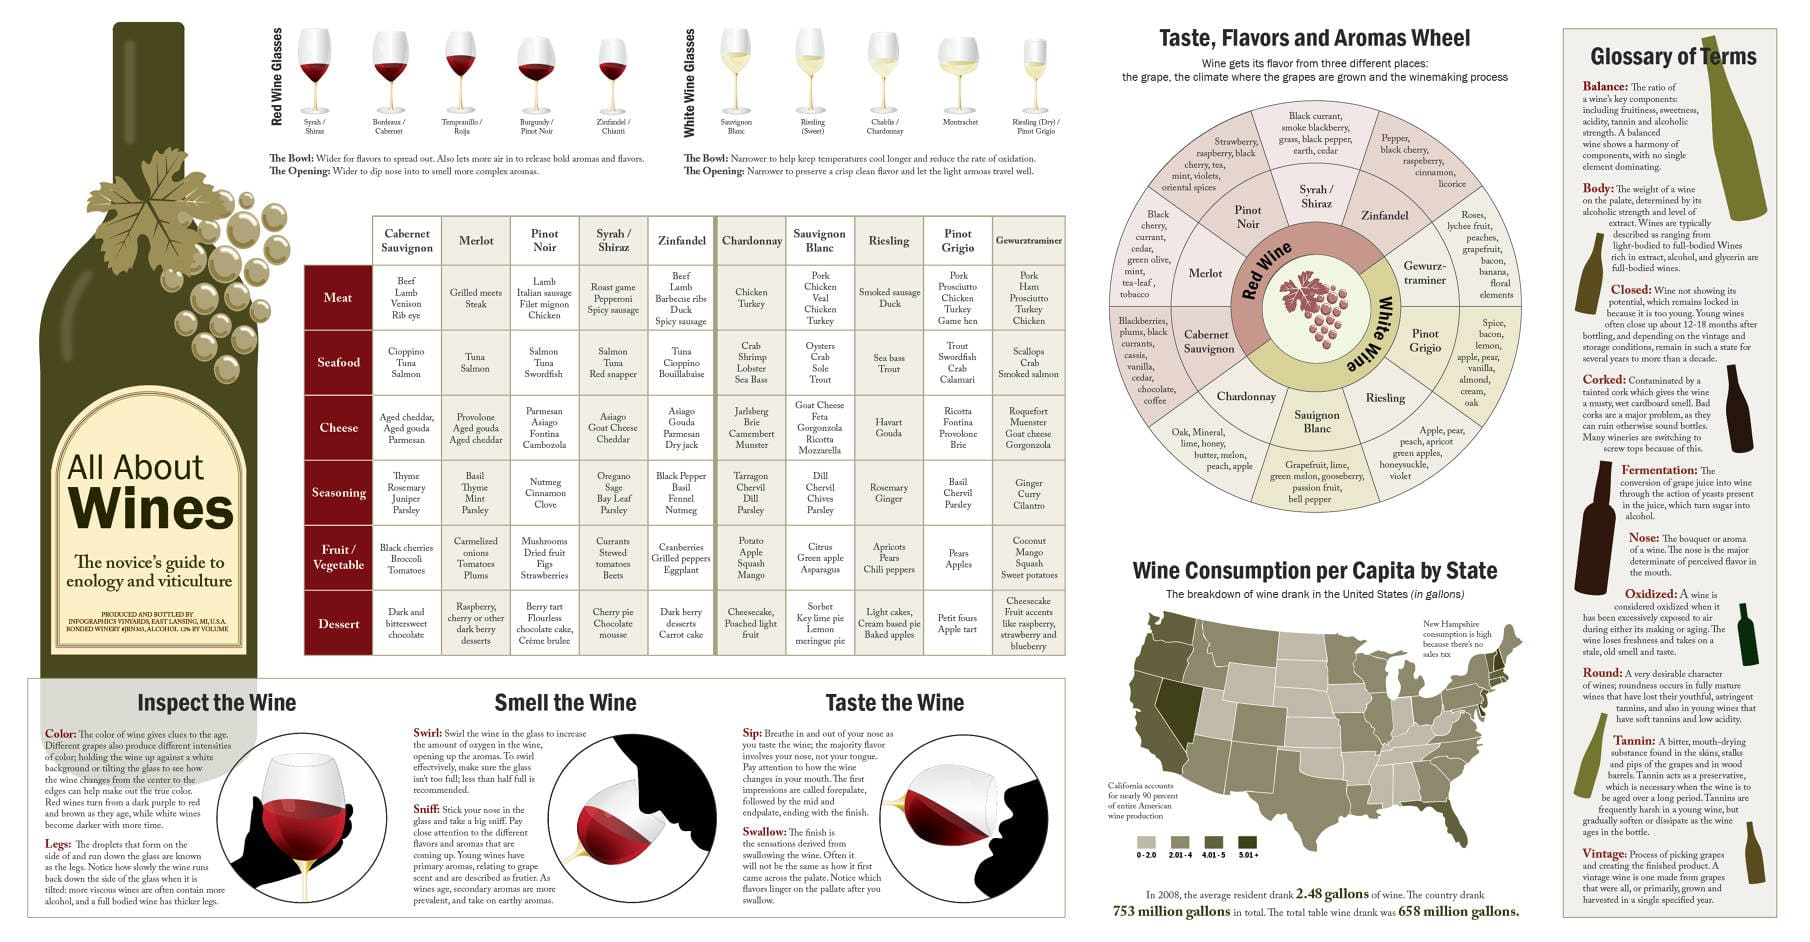 all about wines